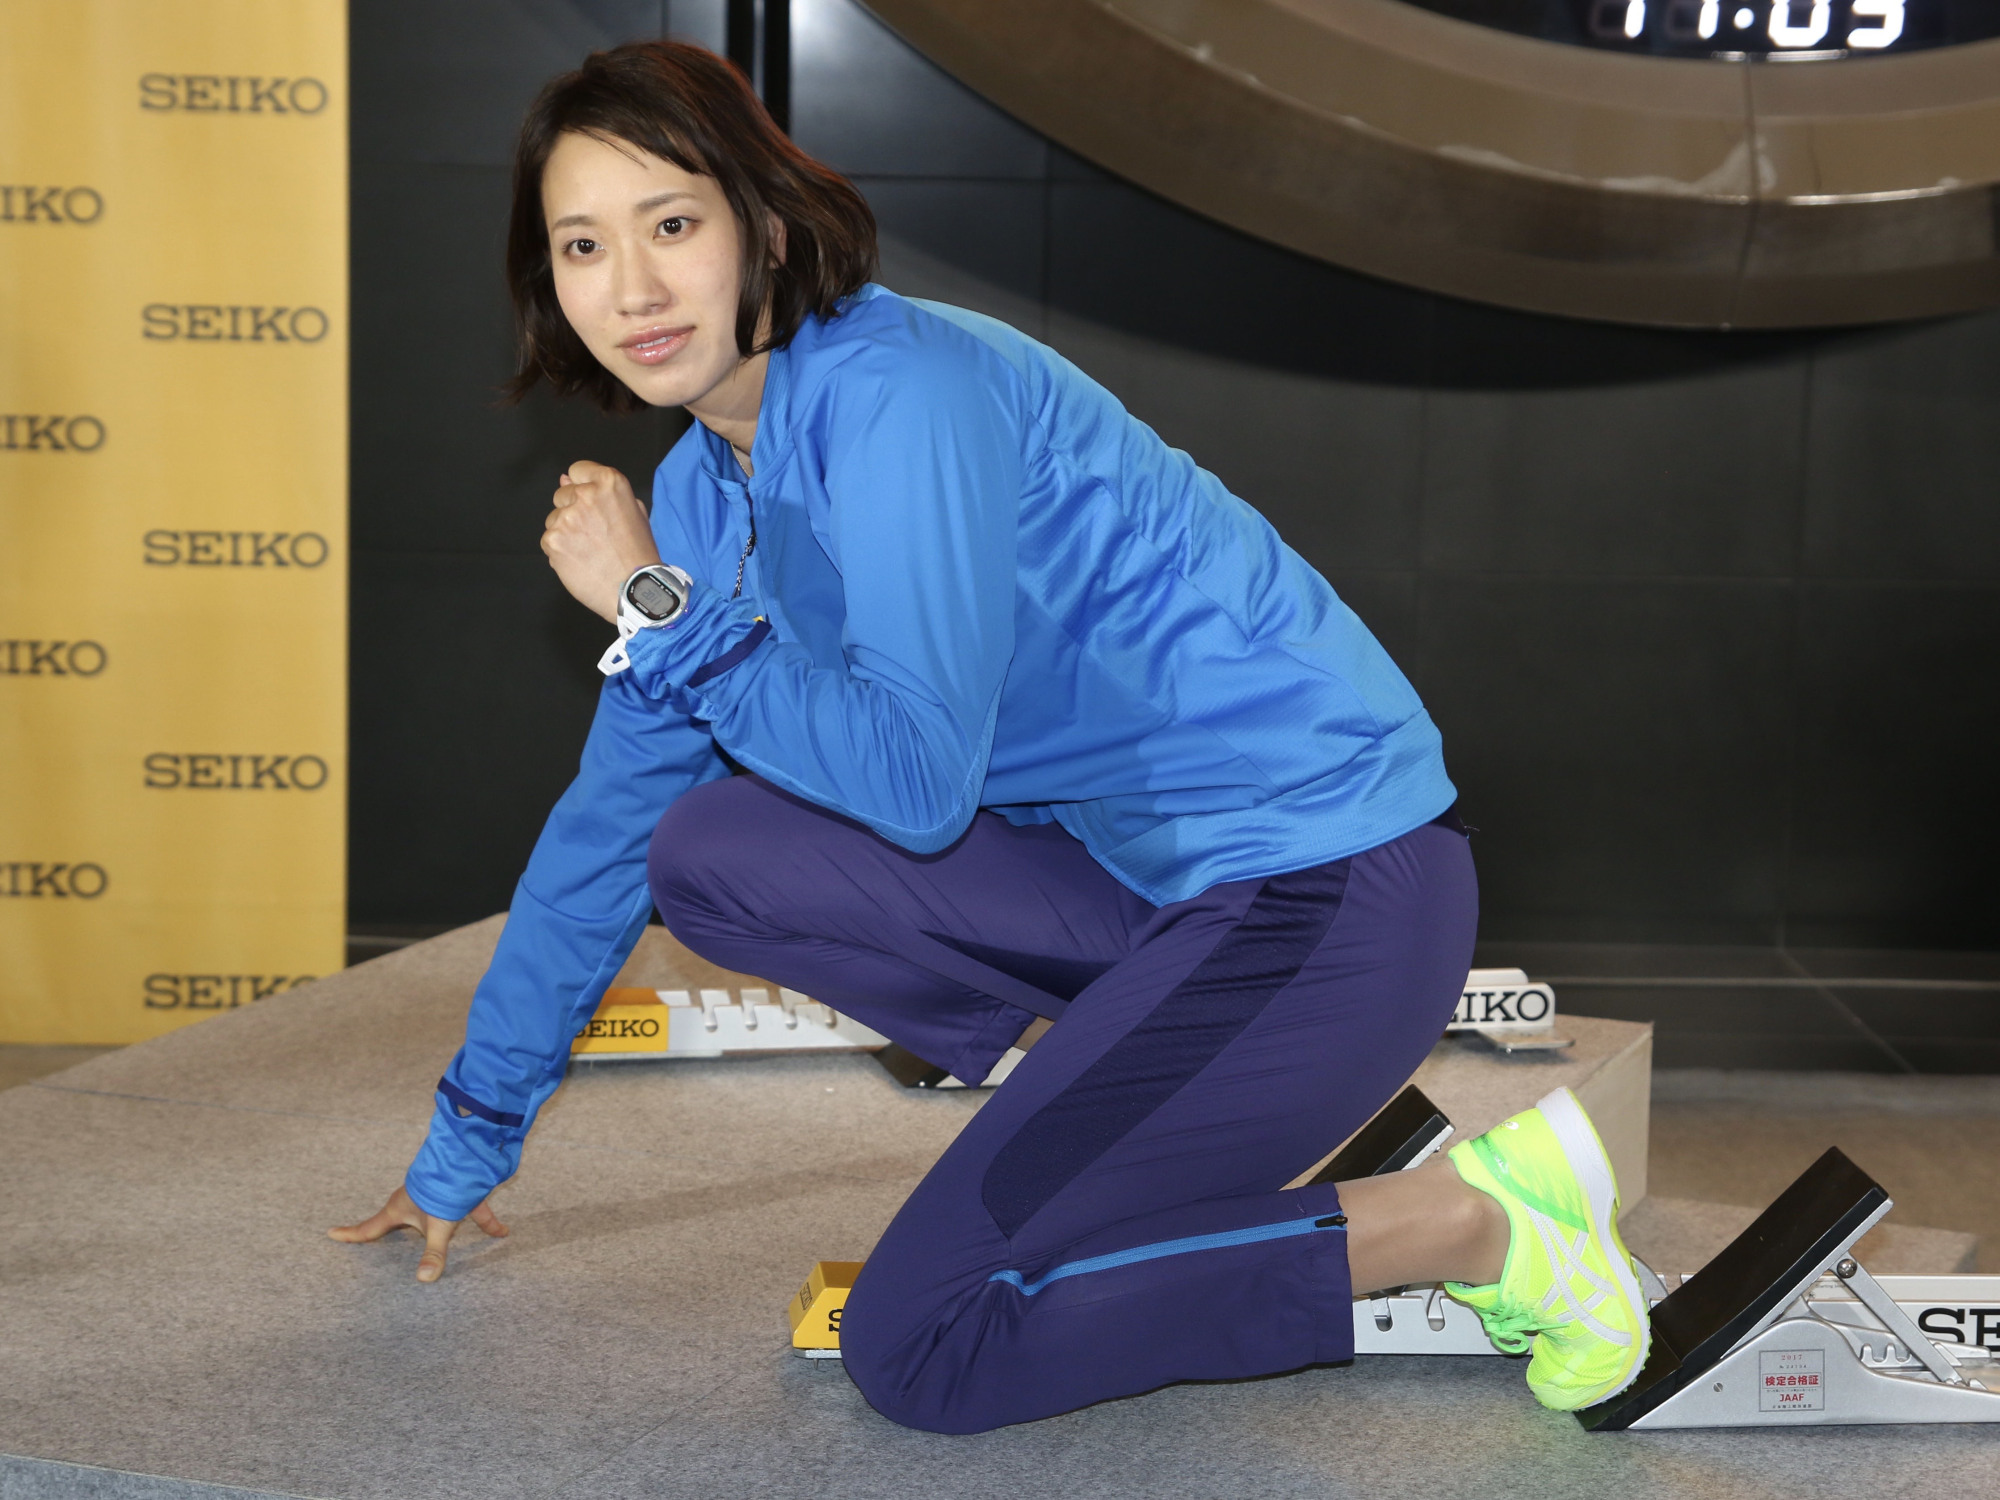 Chisato Fukushima, the national record-holder in the women's 100 and 200 meters, poses for photographers at a news conference in Tokyo on Thursday. | KAZ NAGATSUKA